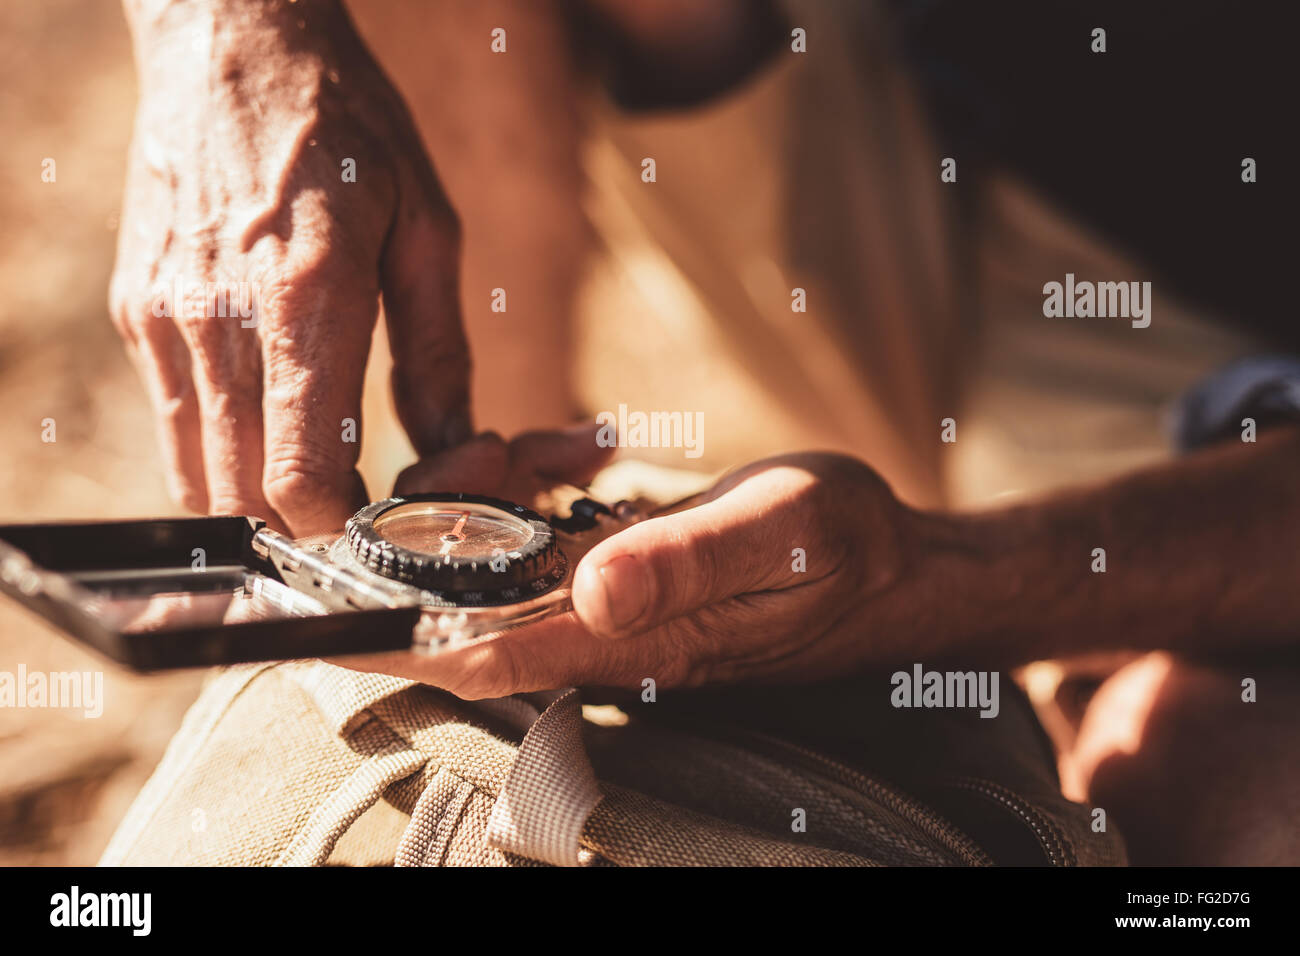 Close up portrait of man using compass for directions. Focus on compass in hands of a male hiker. - Stock Image